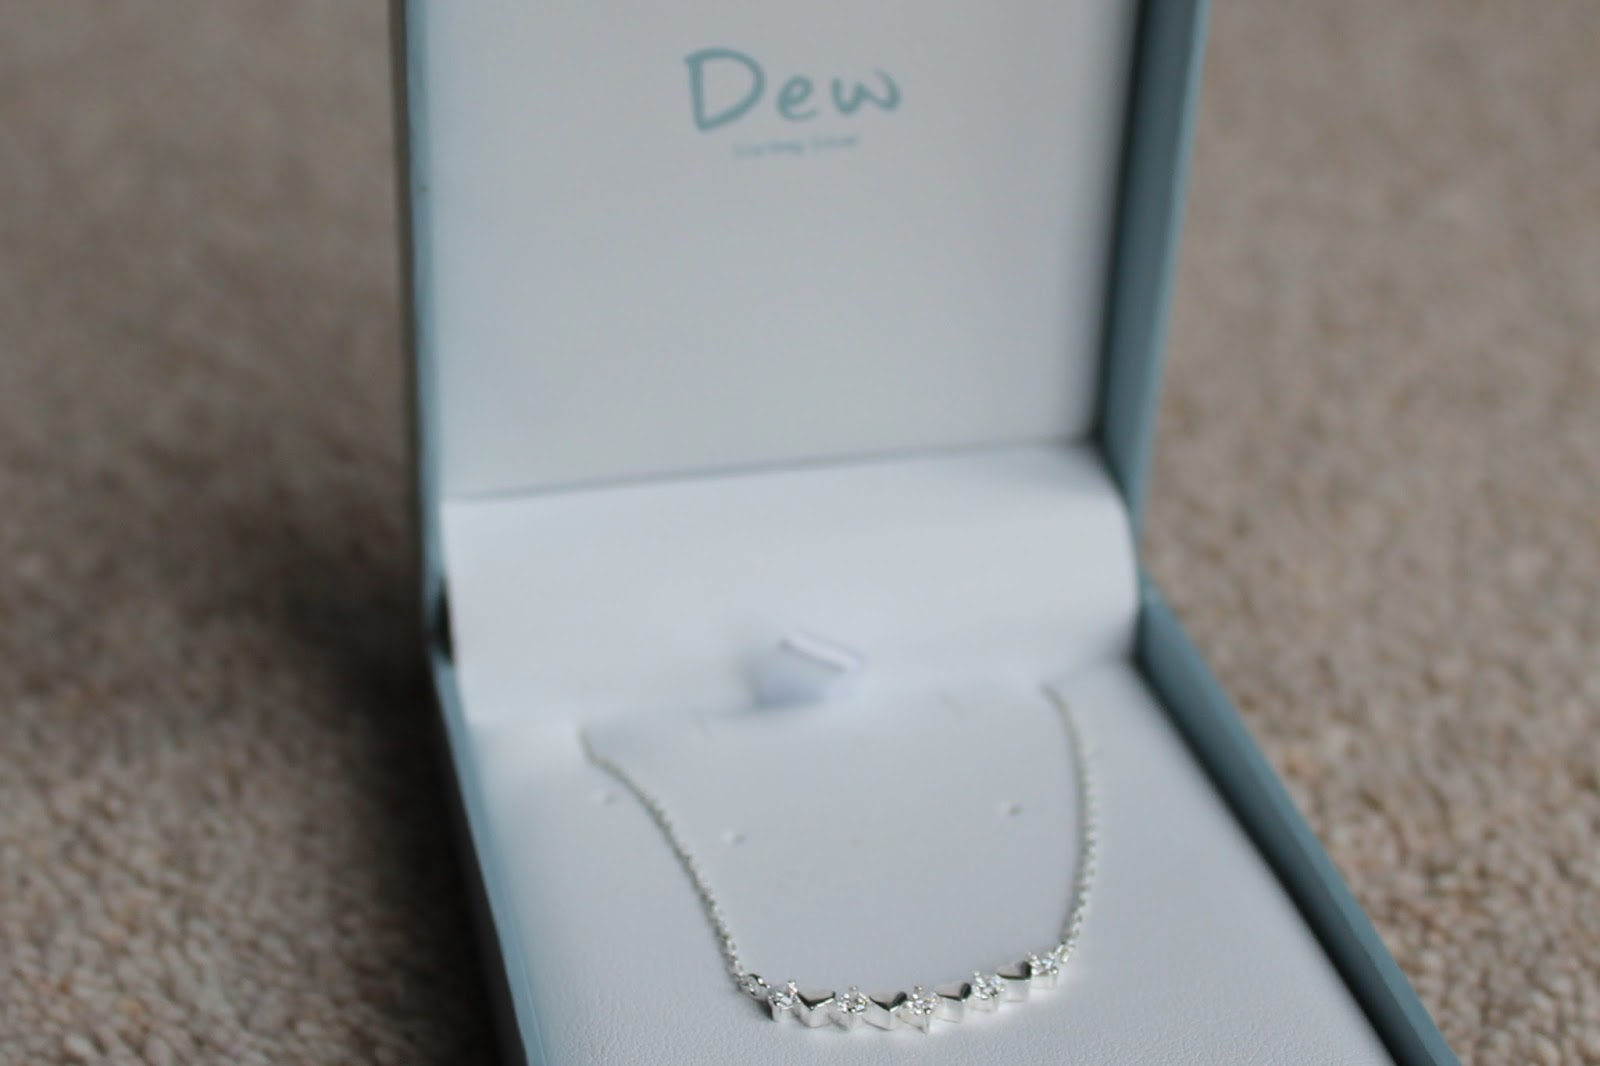 Dew Mini Silver and Stone Heart Necklace - House of Fraser